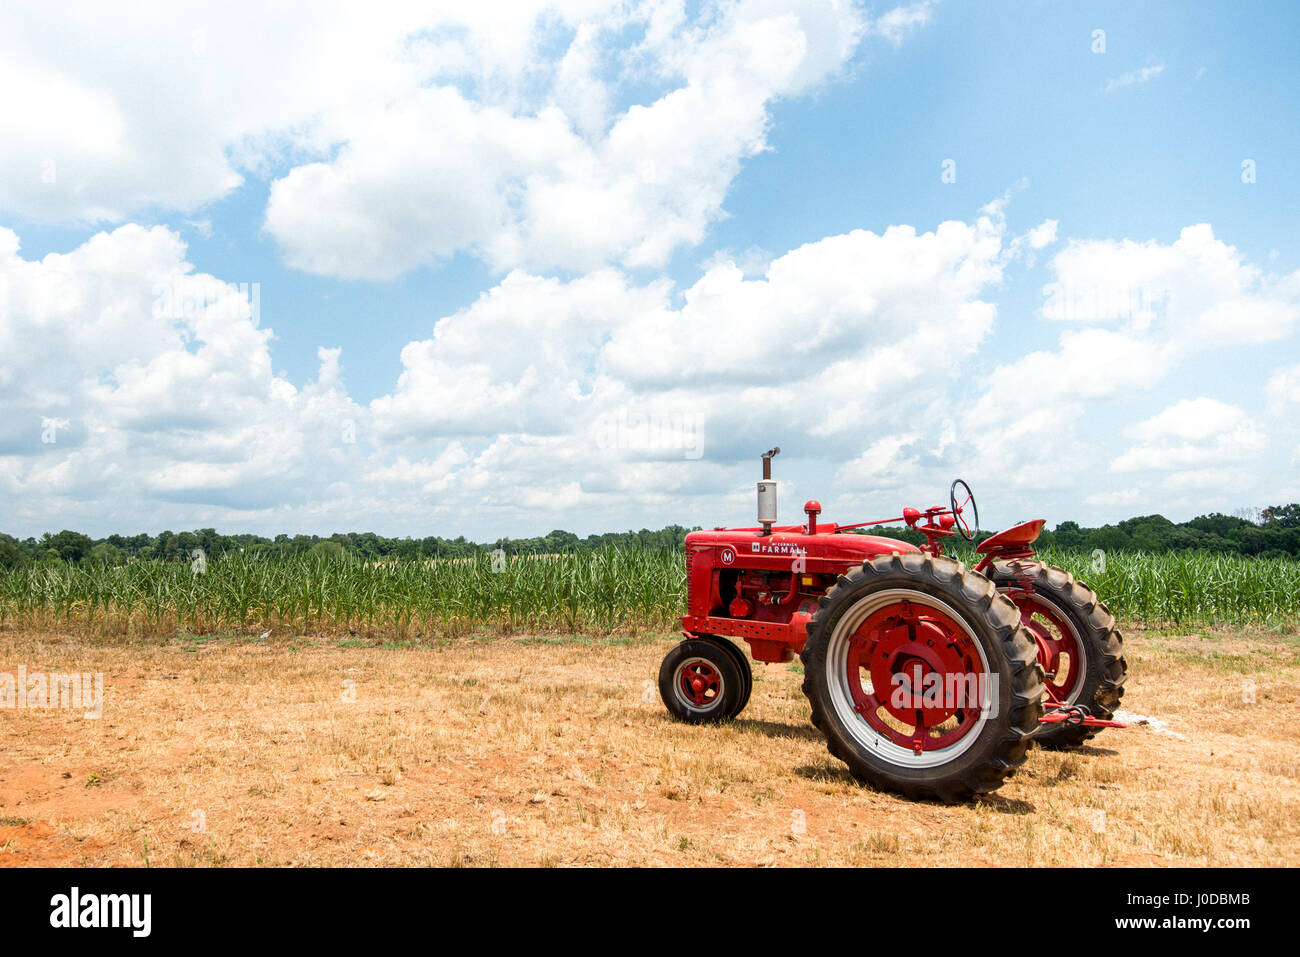 A red McCormick Farmhall tractor in front of a field in North Carolina during the summer months. - Stock Image